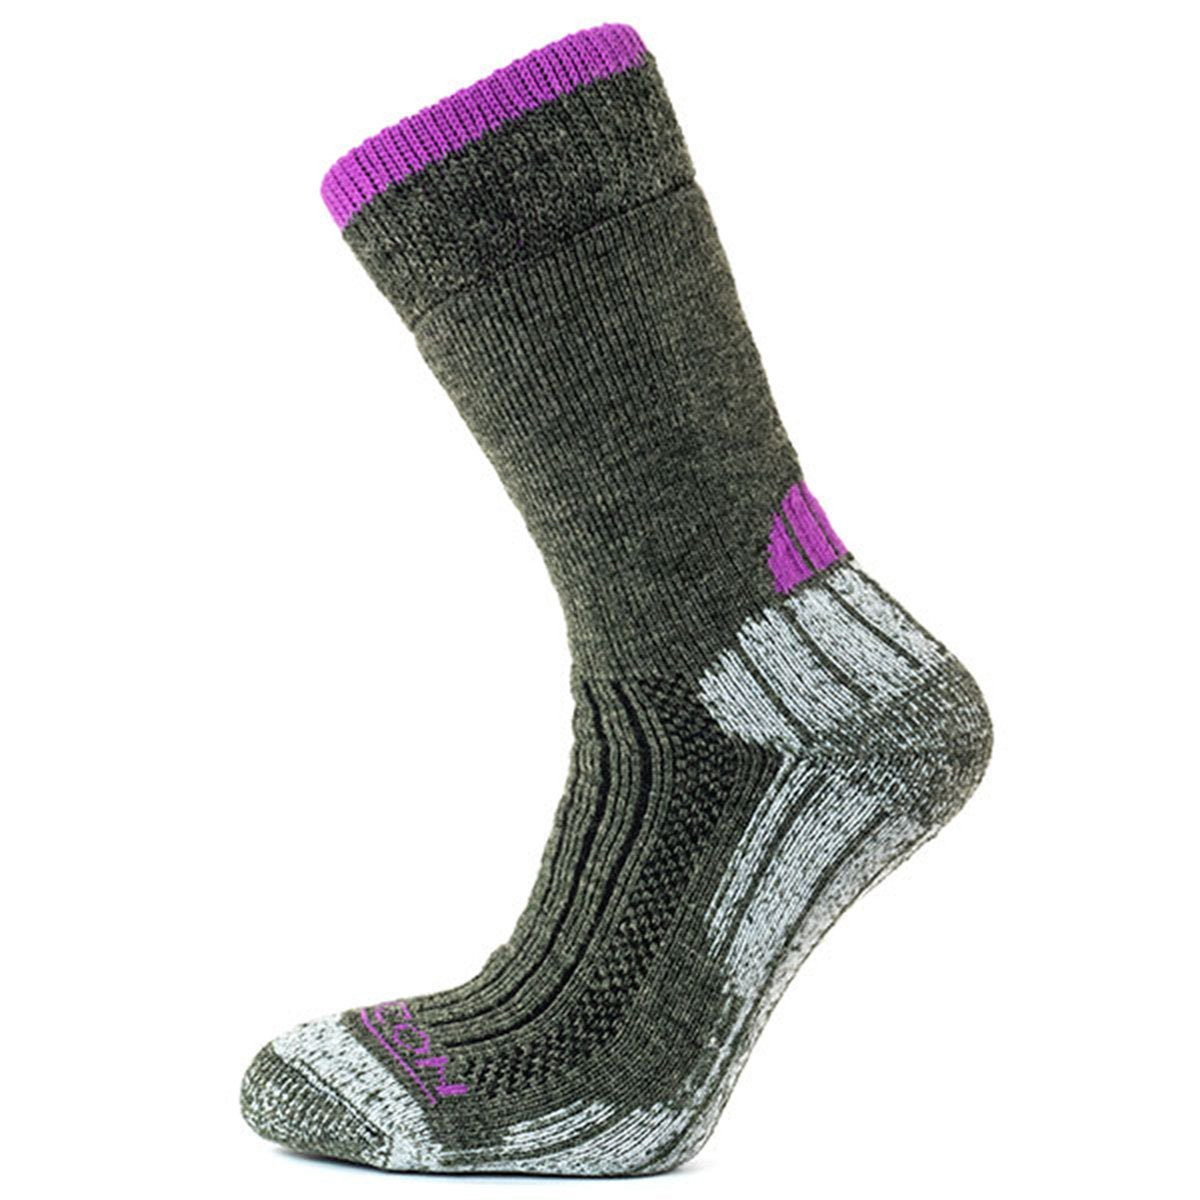 Horizon Socks » Performance Merino Trekker | Womens Merino Wool Socks - Olive/Purple